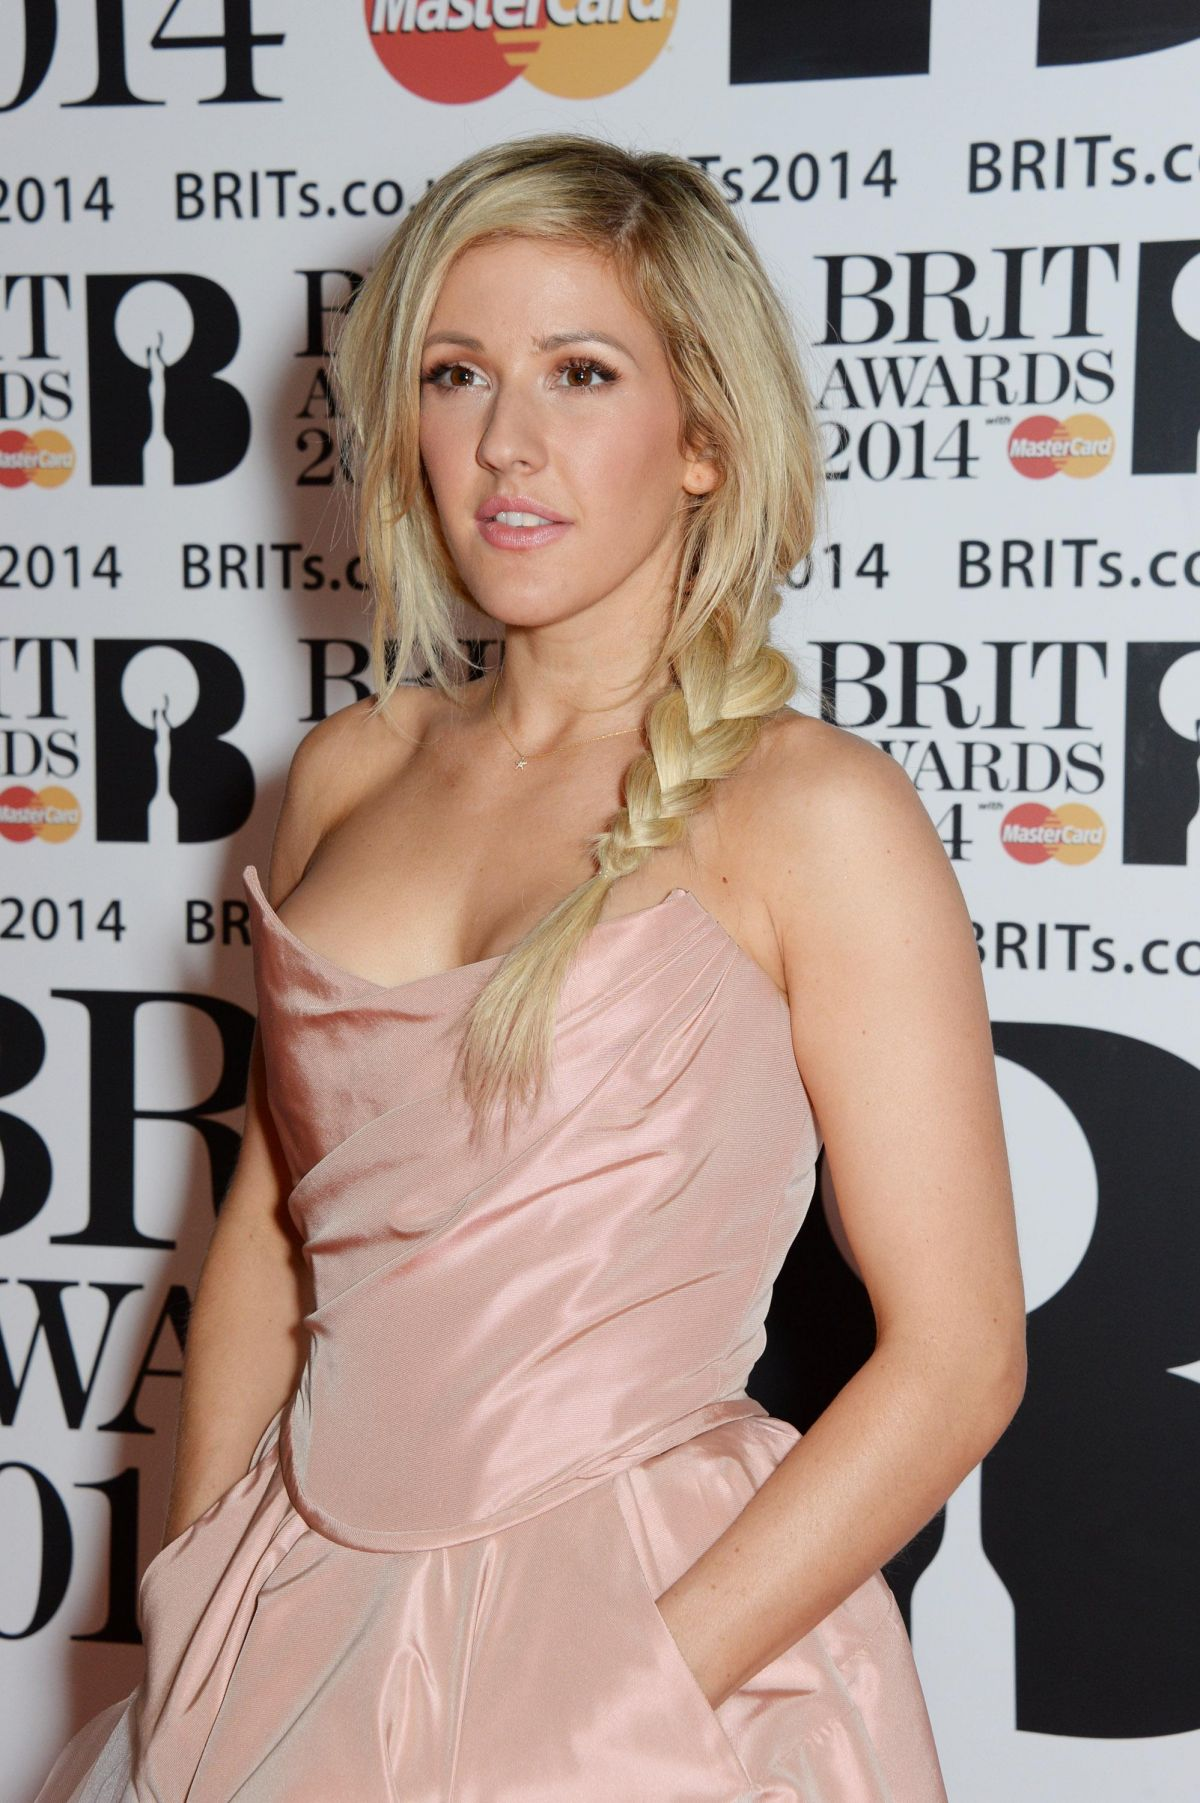 ELLIE GOULDING at 2014 Brit Awards in London